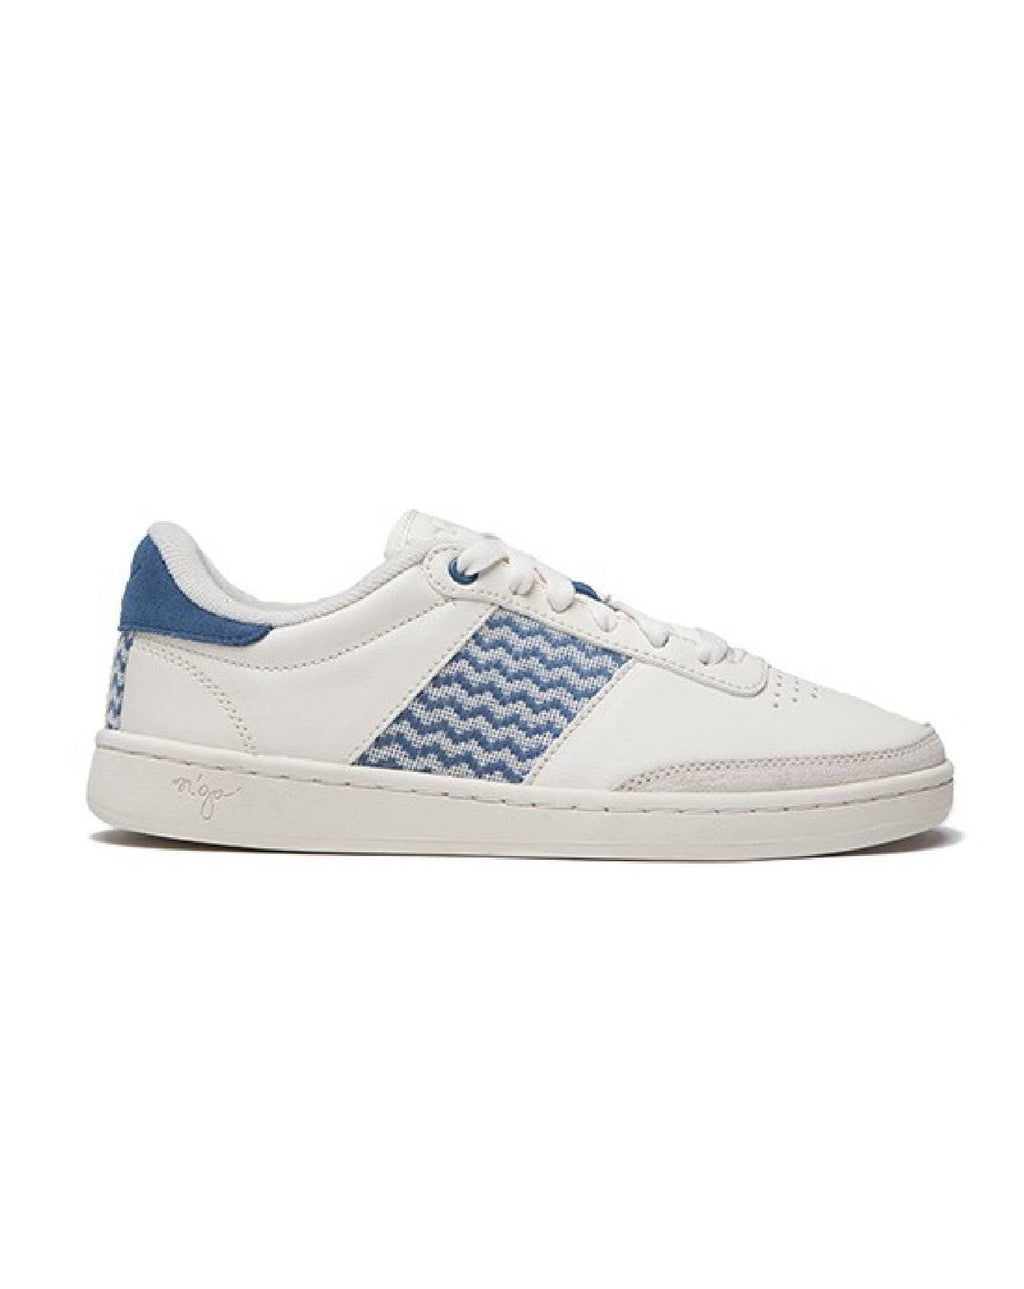 Ky Co dame sneakers